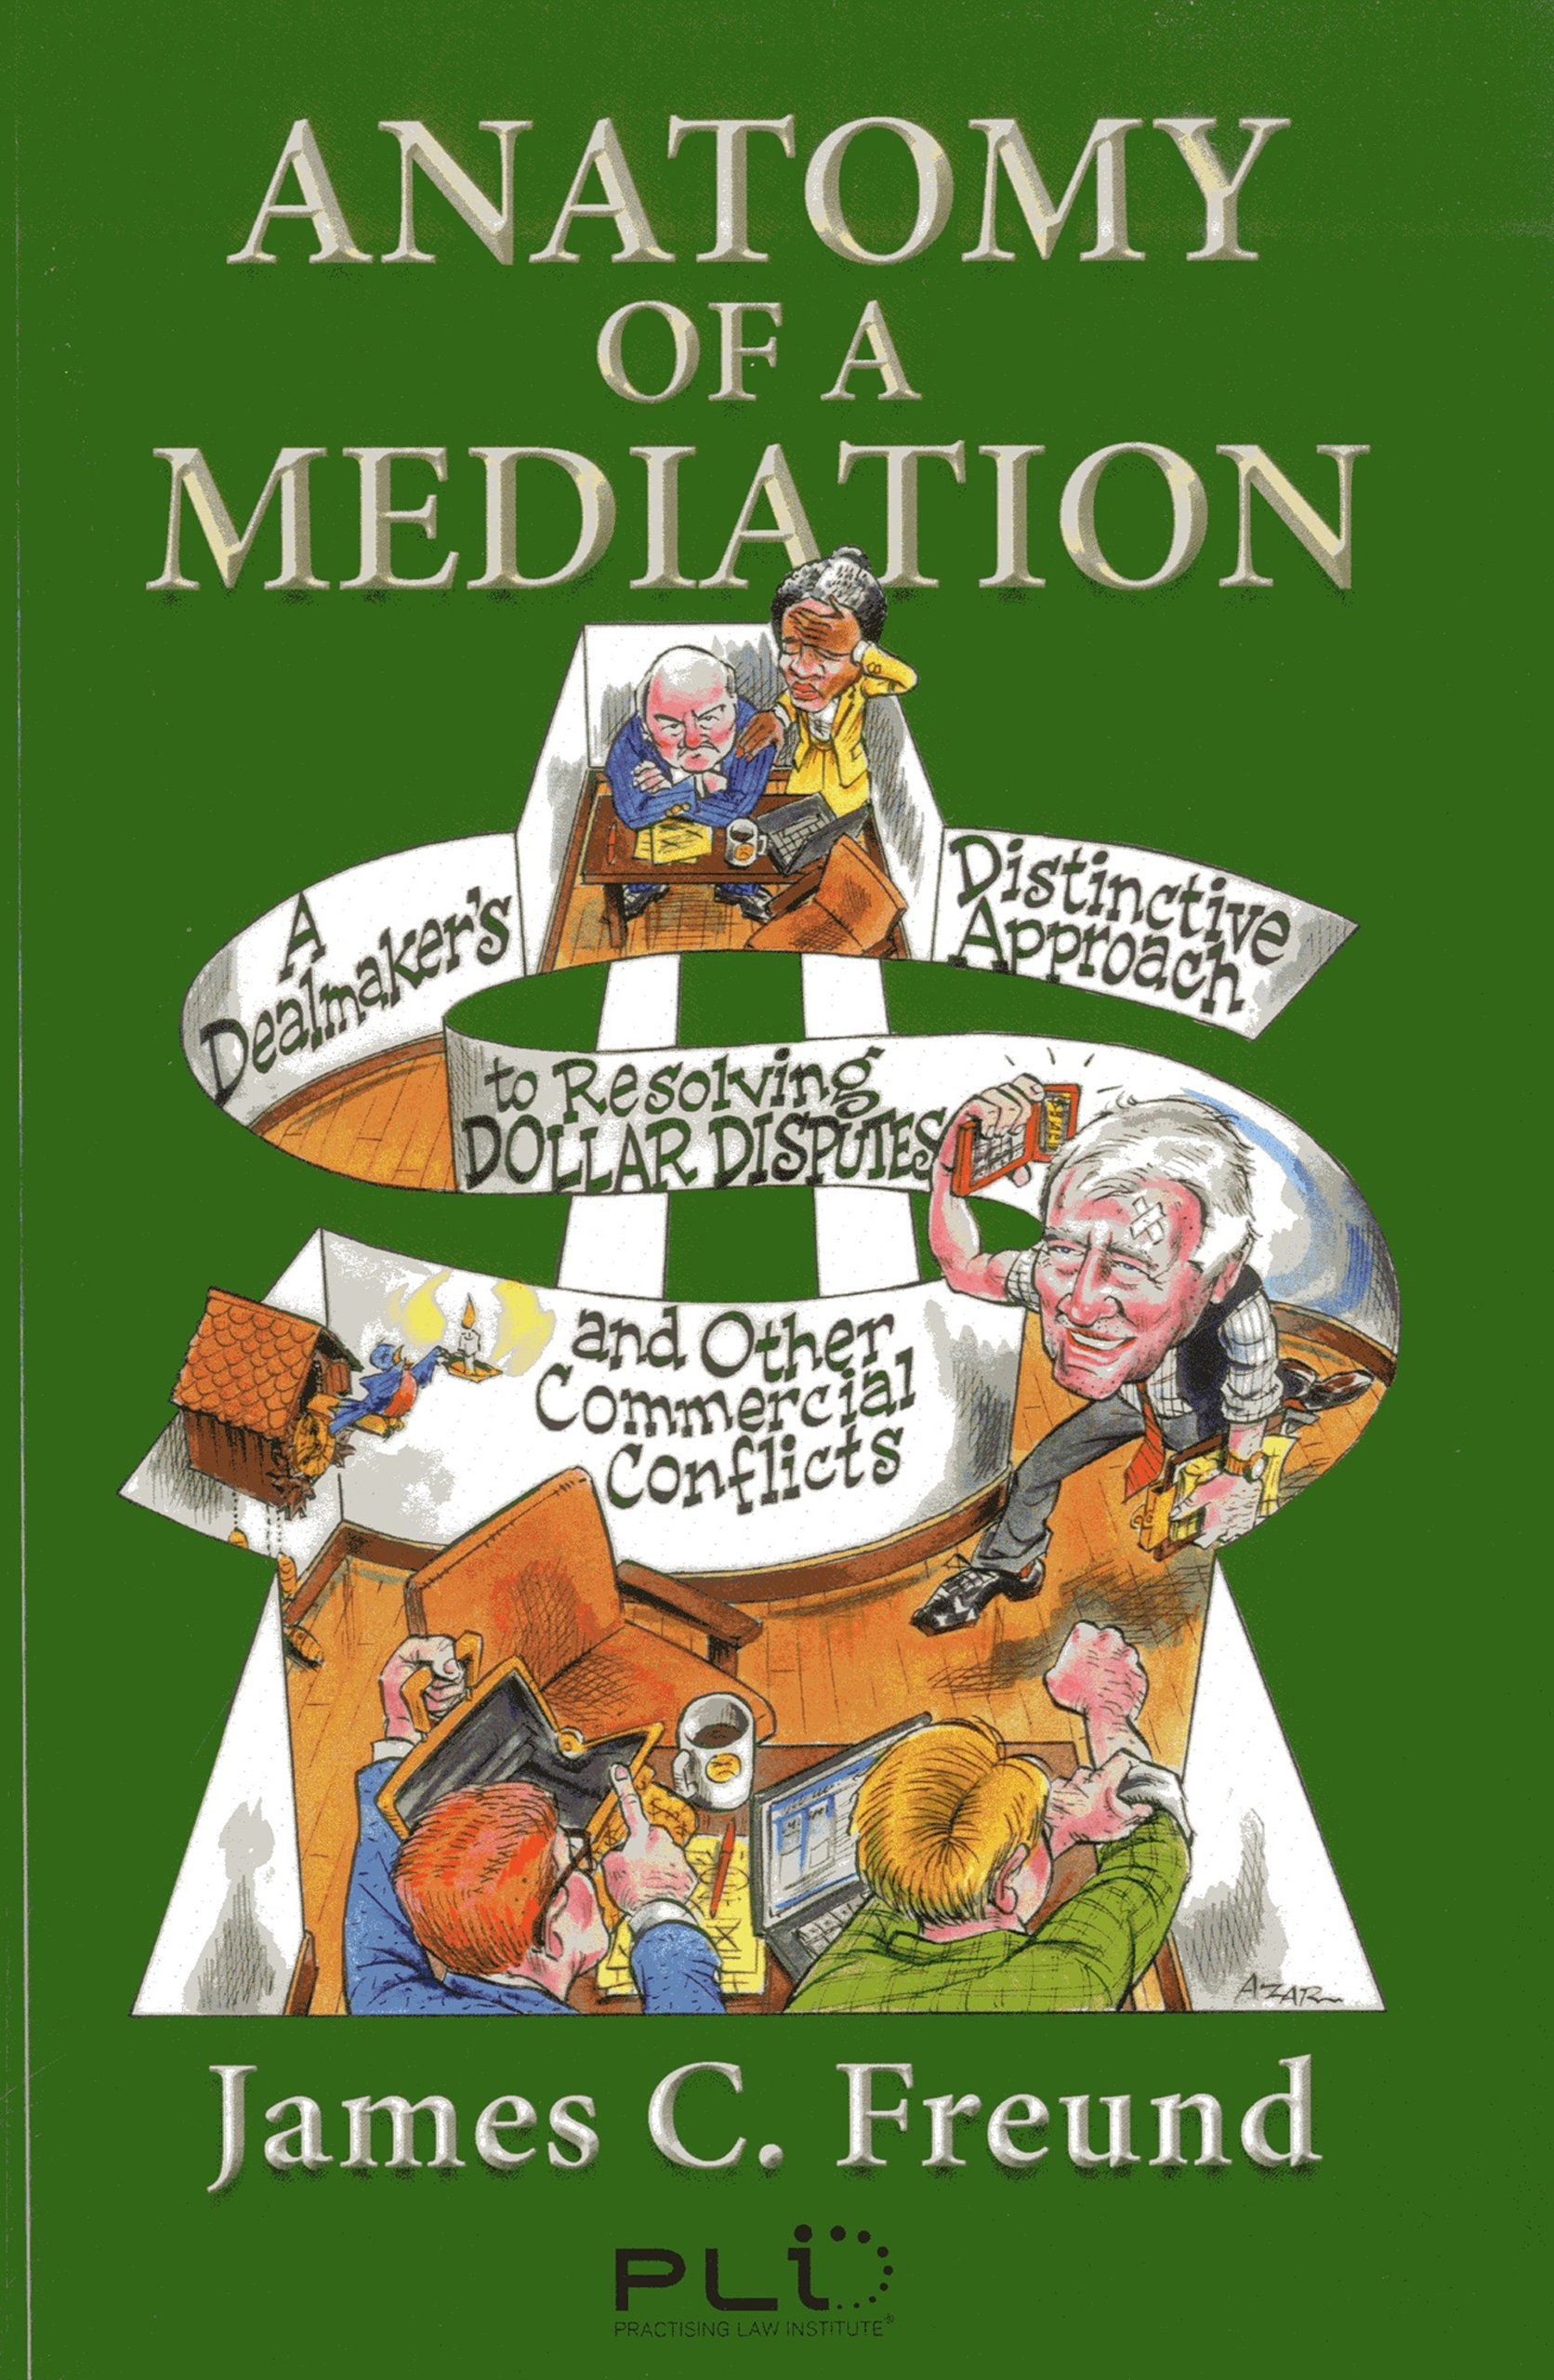 Anatomy of a Mediation: A Dealmaker's Distinctive Approach to Resolving Dollar Disputes and Other Commercial Conflicts